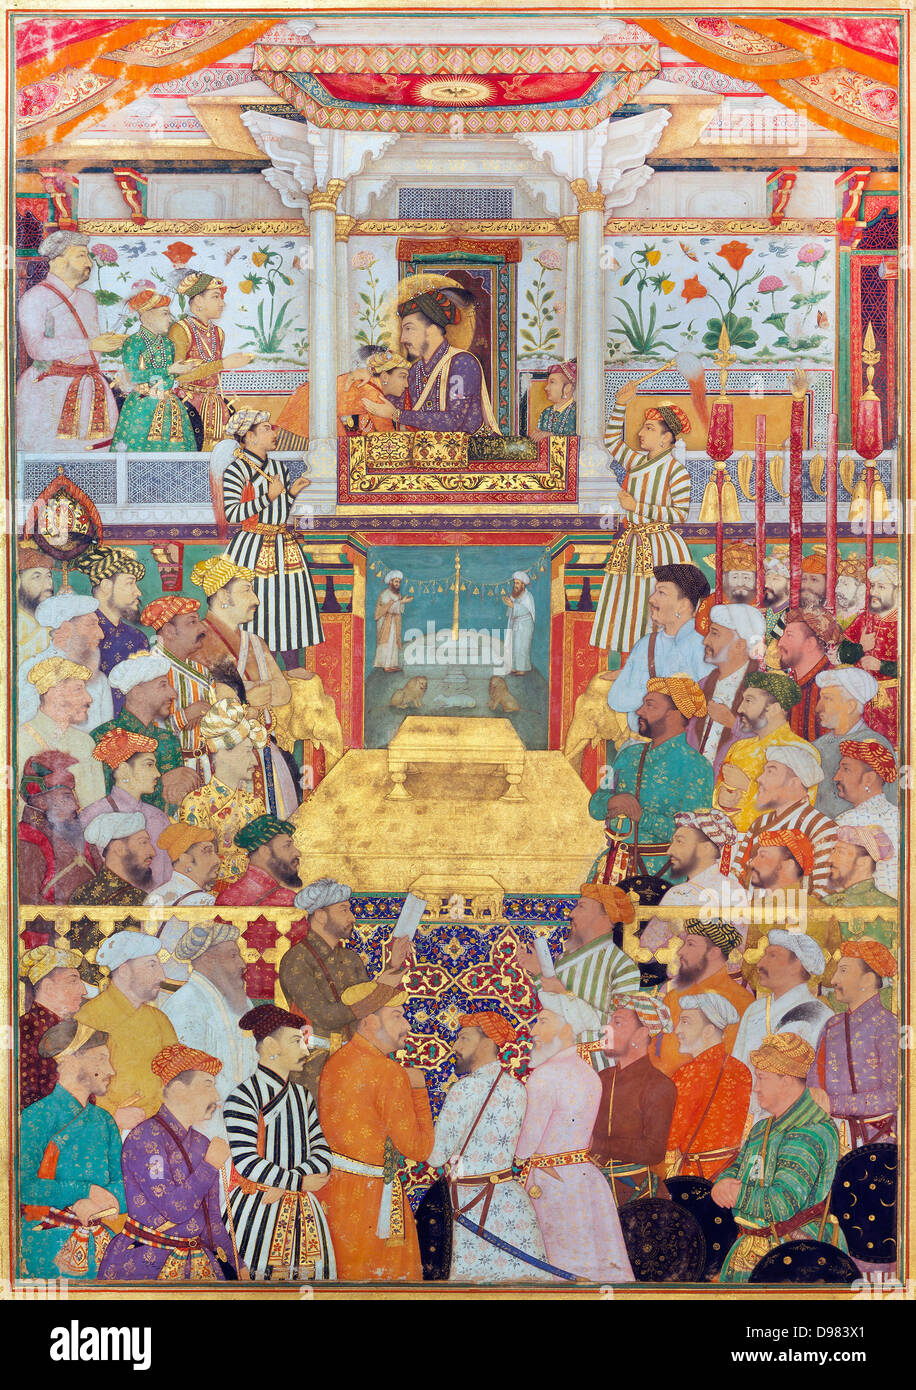 Bichitr, Padshahnama plate 10 : Shah-Jahan receives his three eldest sons and Asaf Khan during his accession ceremonies - Stock Image